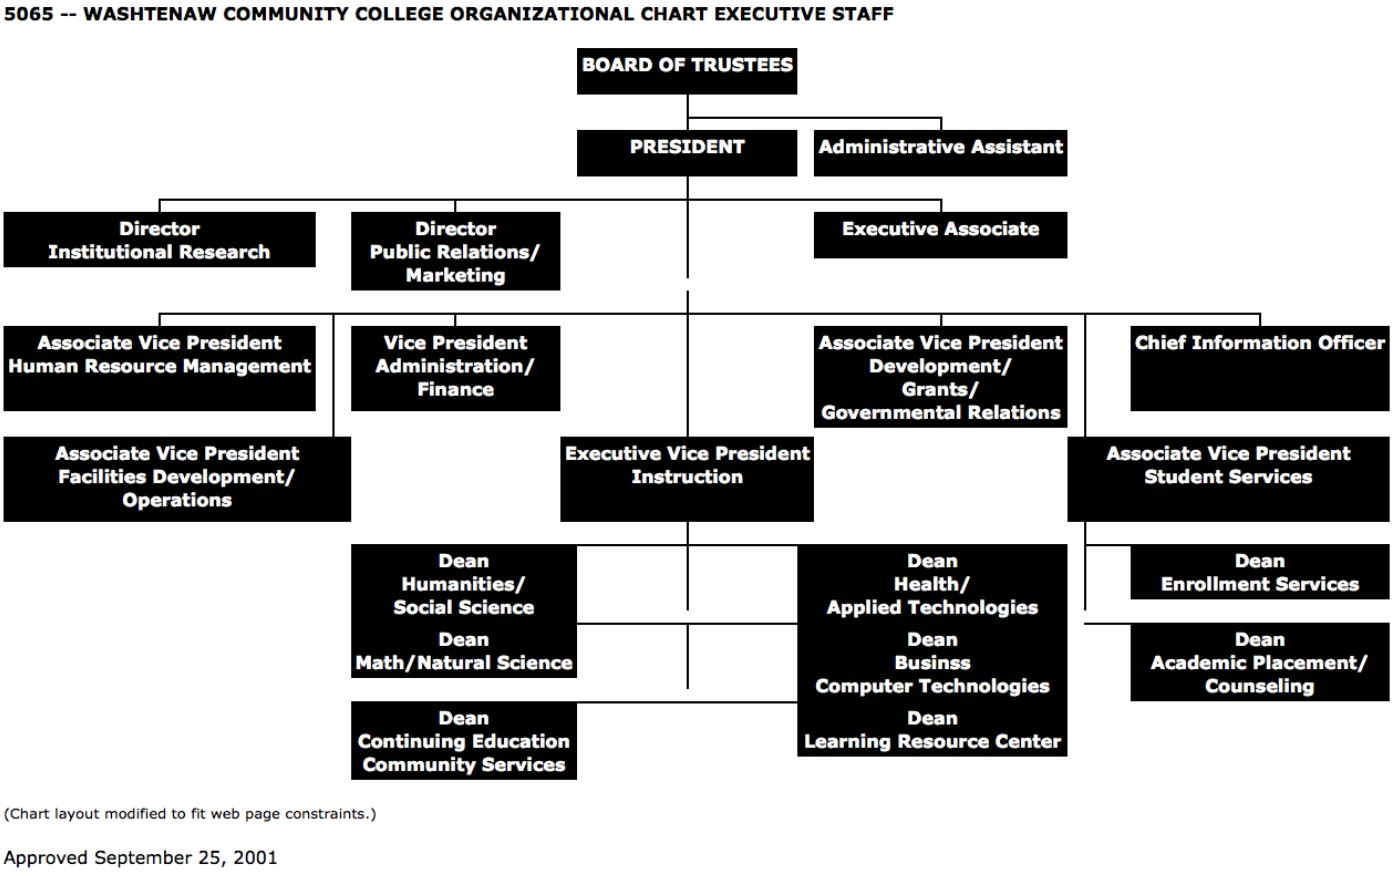 Abandoned Org Chart Suggests an Executive Staff Policy